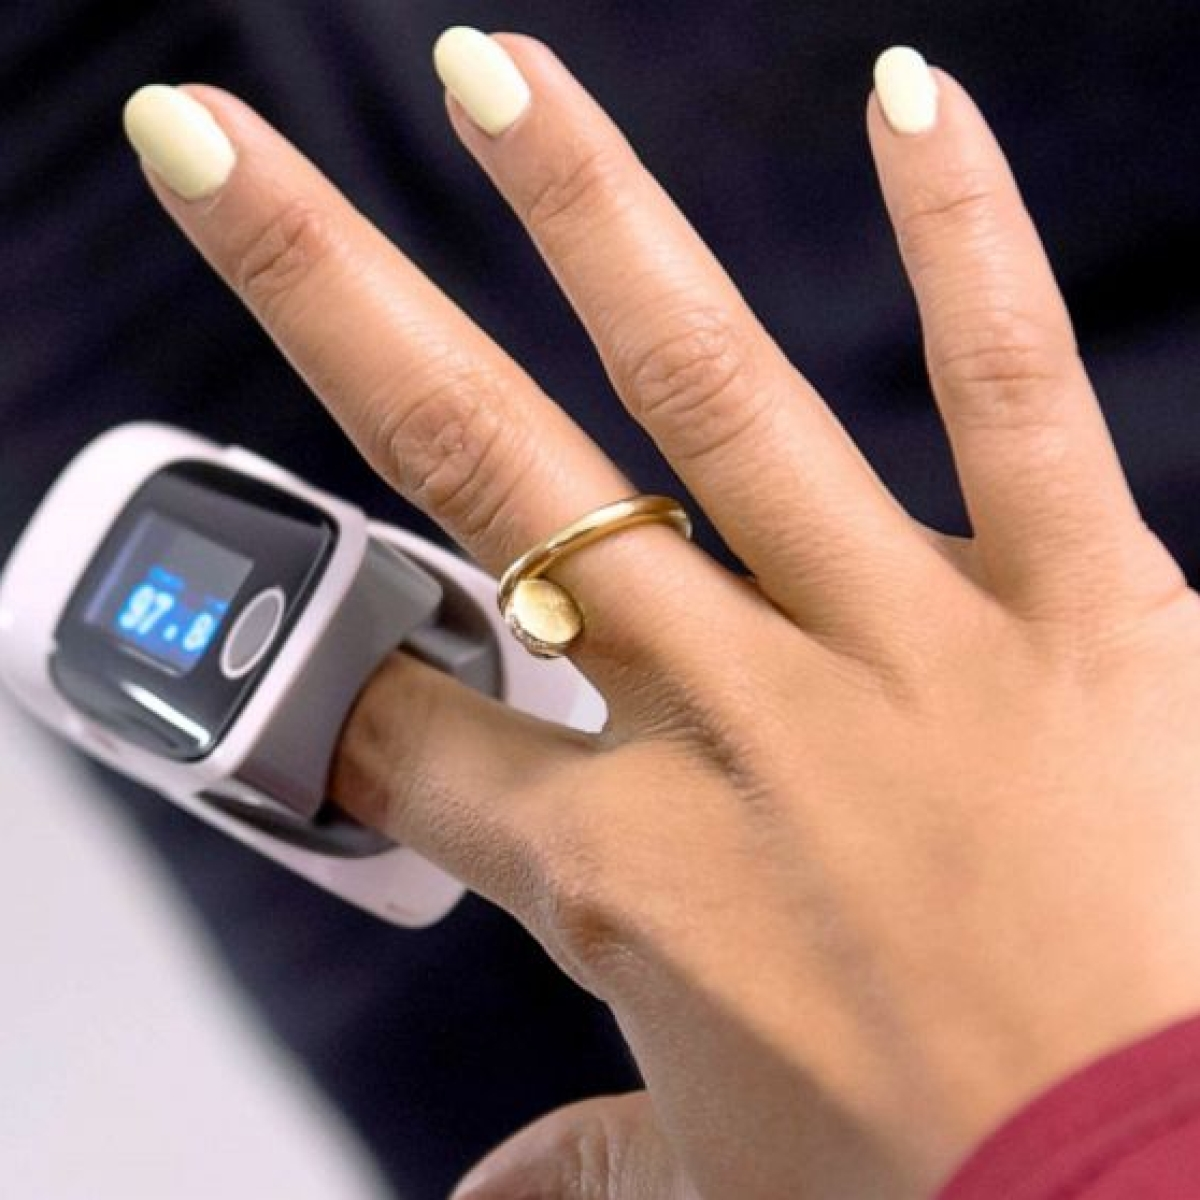 Do not download oximeter app: Maharashtra cyber police warns that such applications may leave user vulnerable to data theft